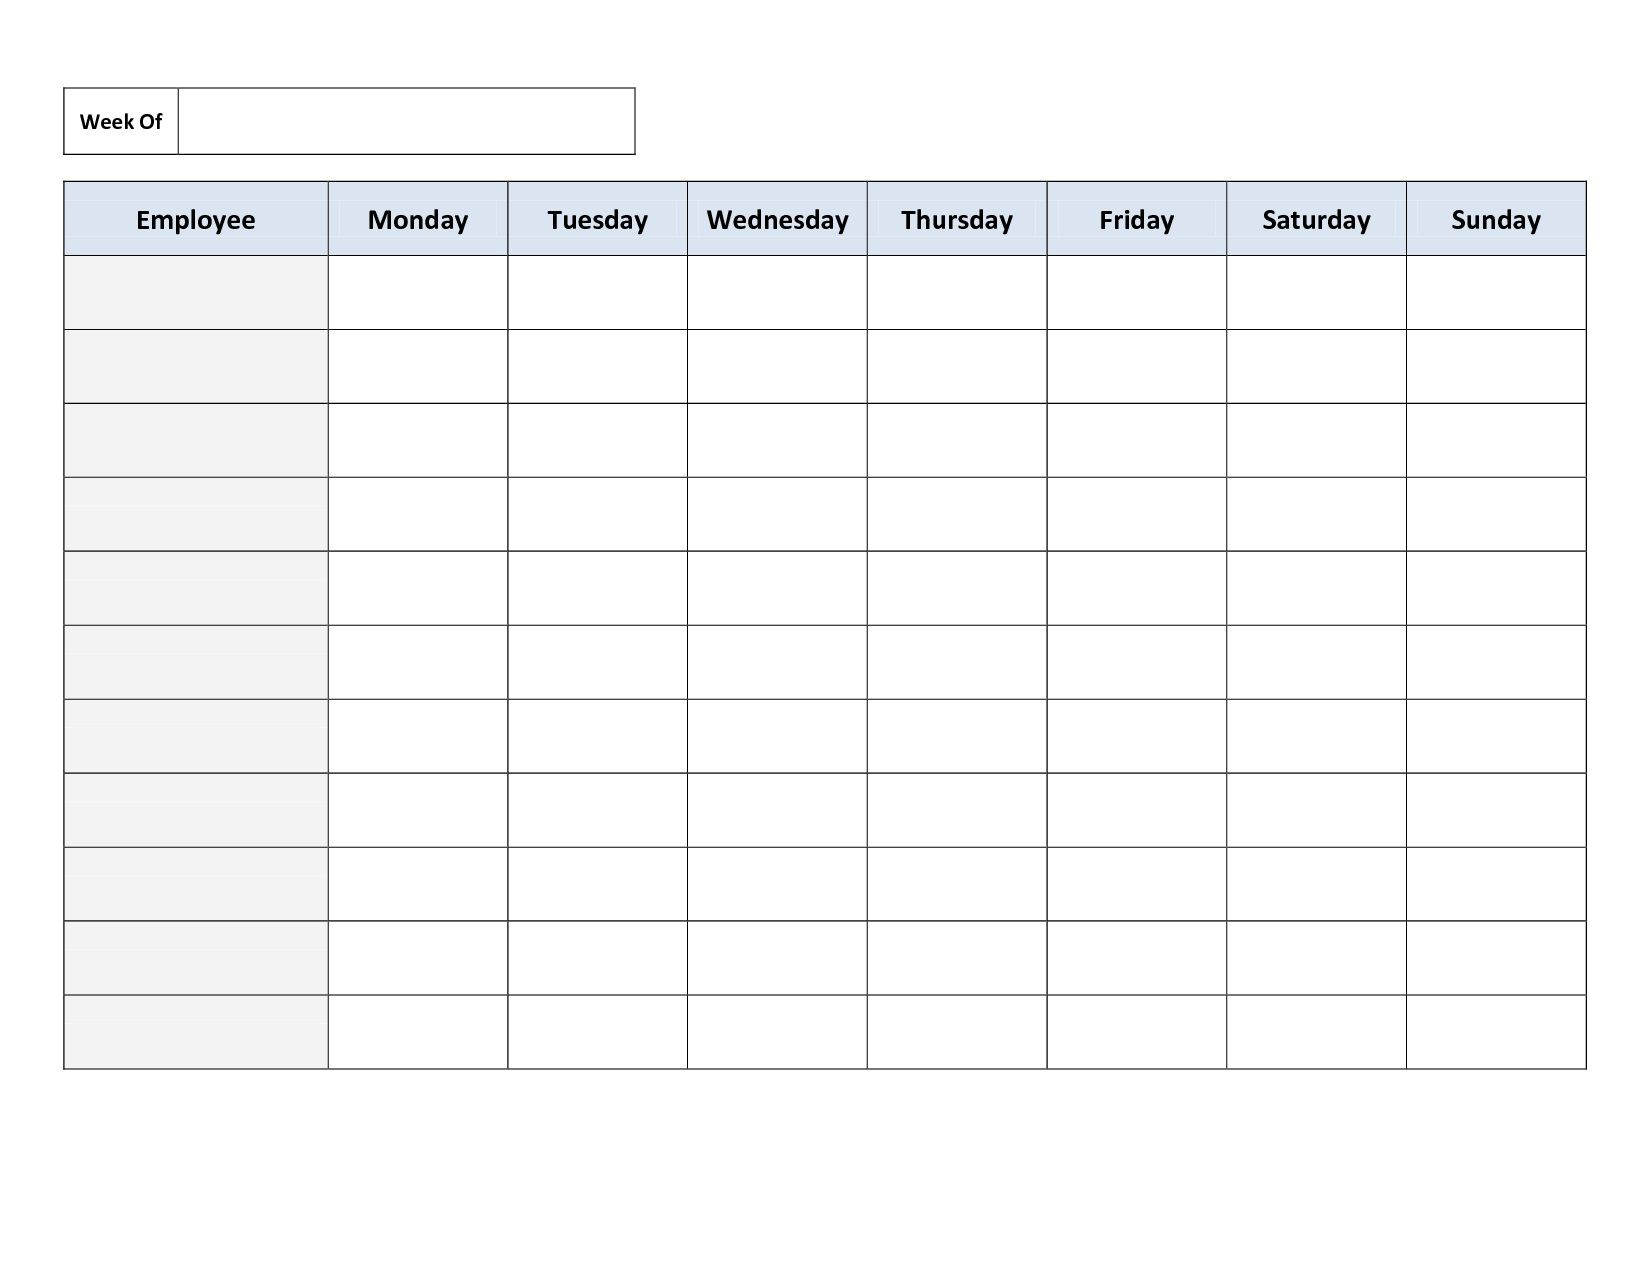 002 Amazing Free Employee Scheduling Template Idea  Templates Weekly Work Schedule Printable Training Plan ExcelFull